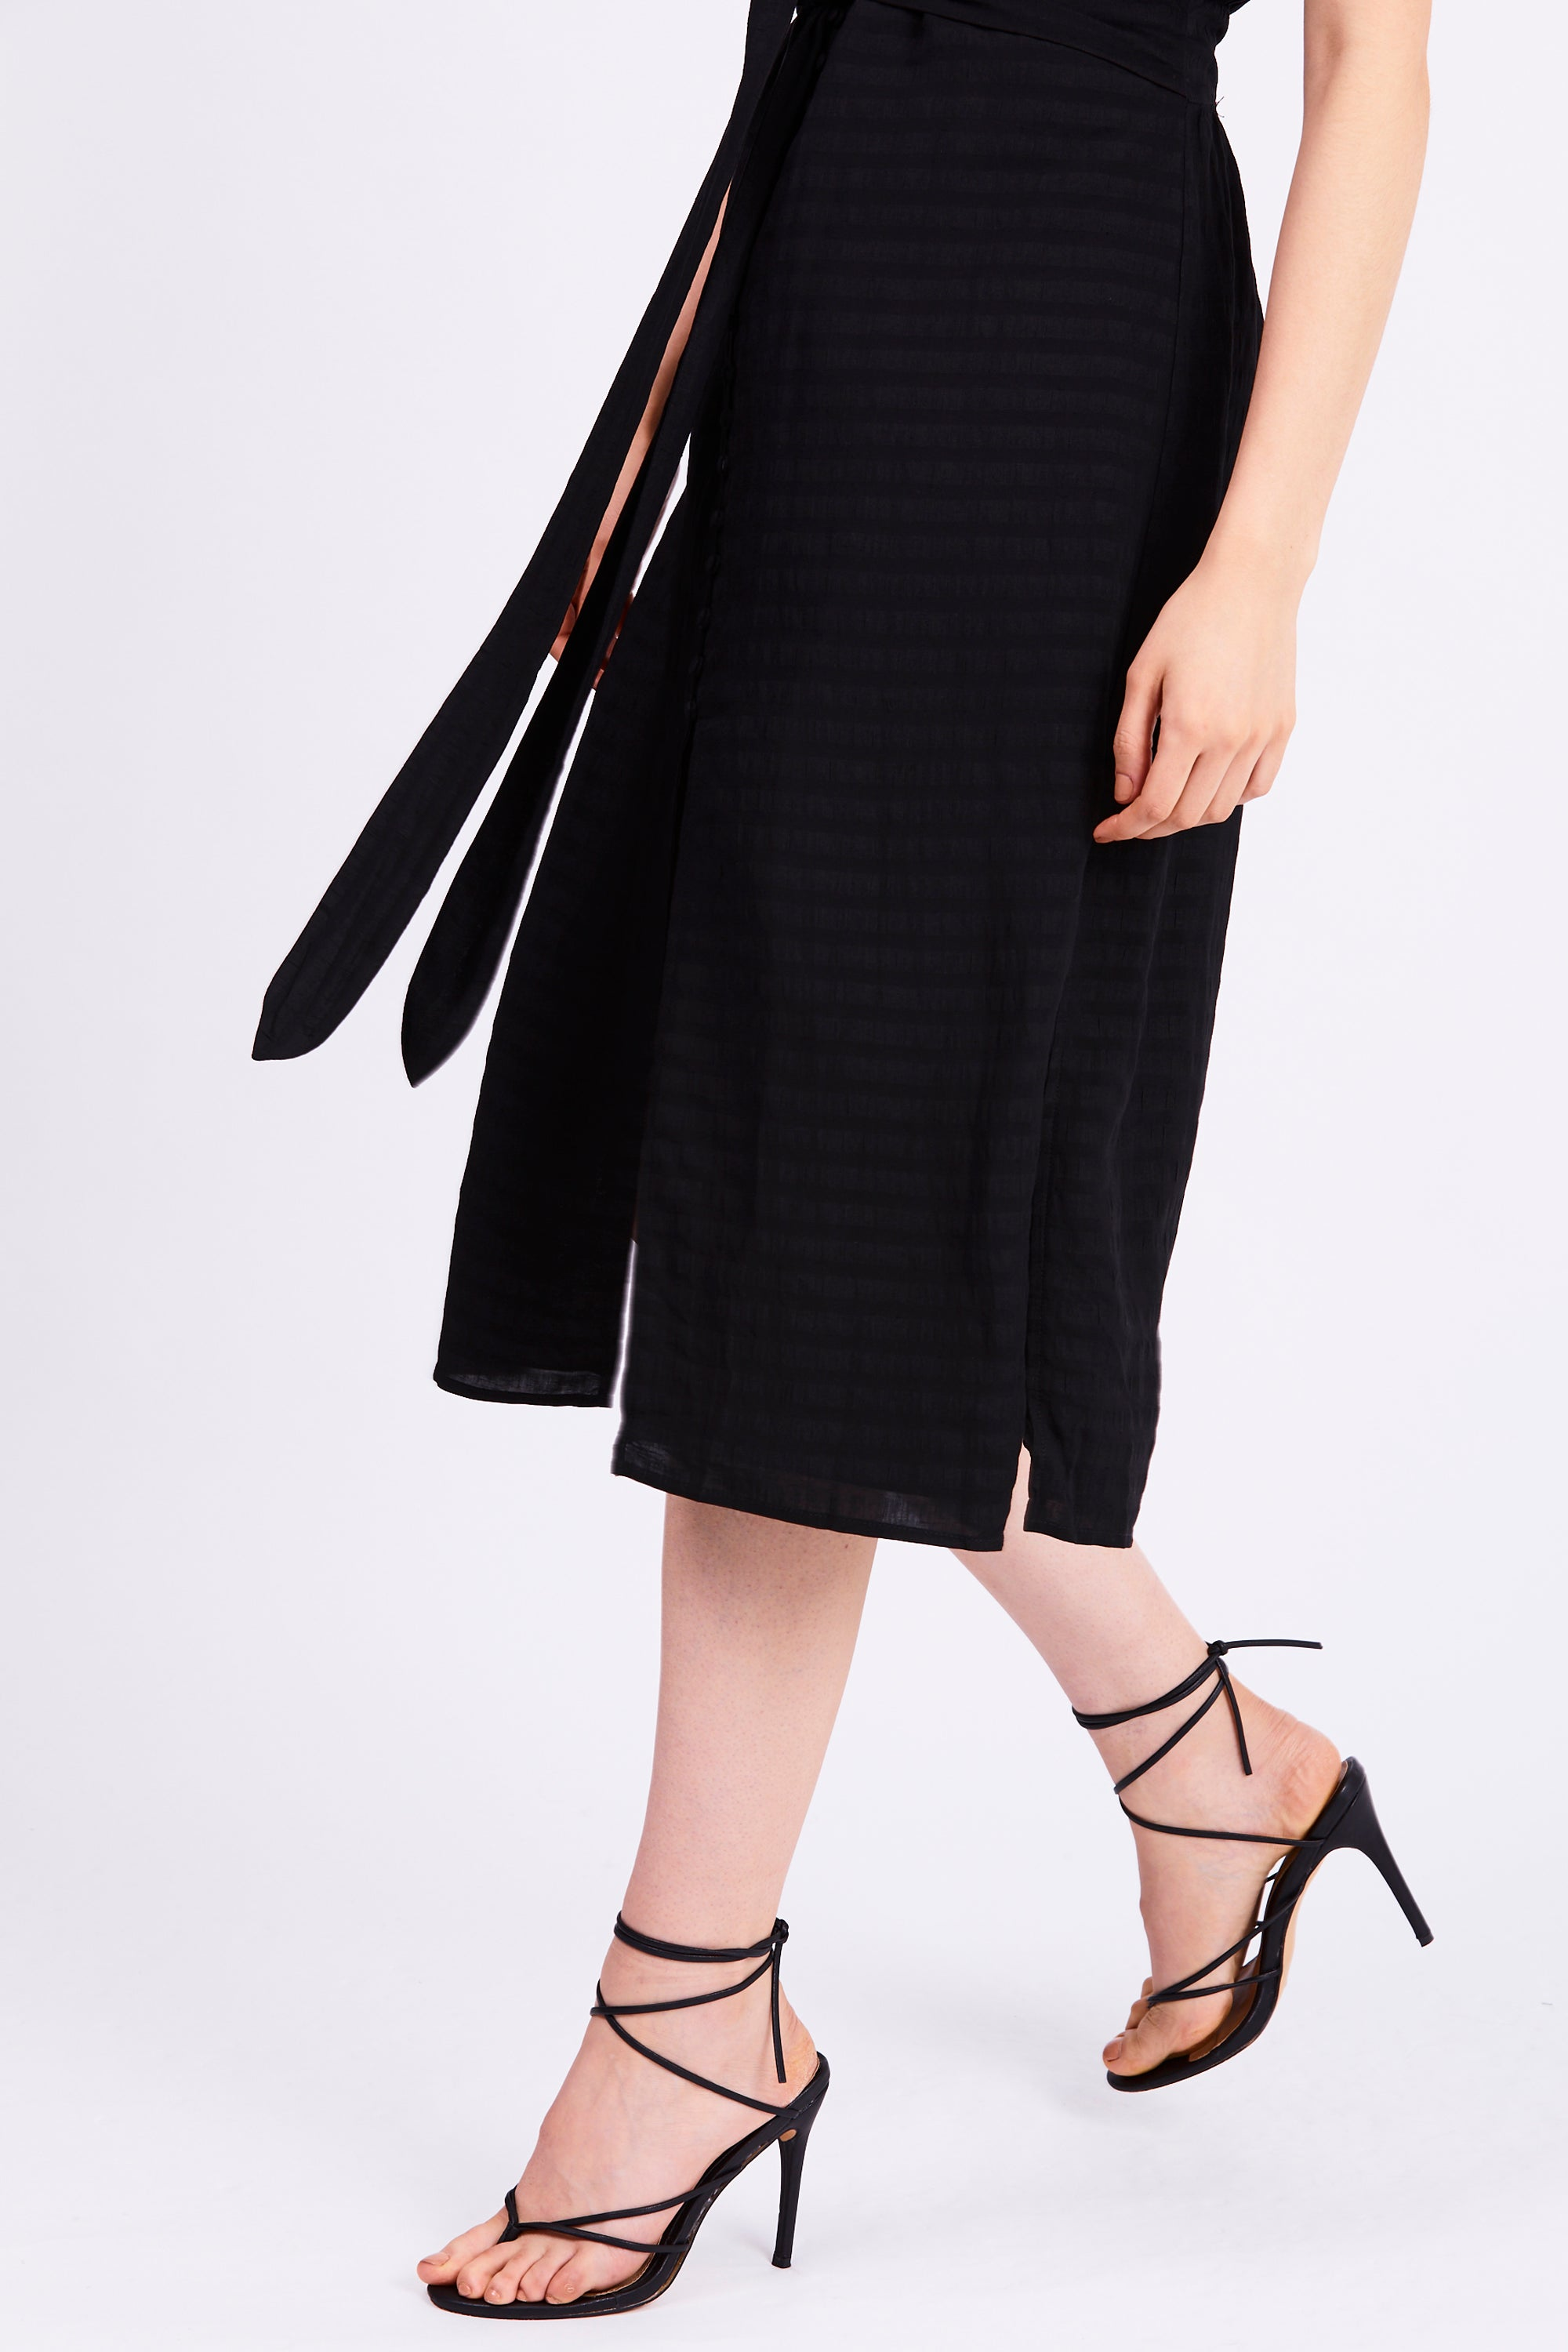 DAY BREAK TIE FRONT DRESS | BLACK STRIPE